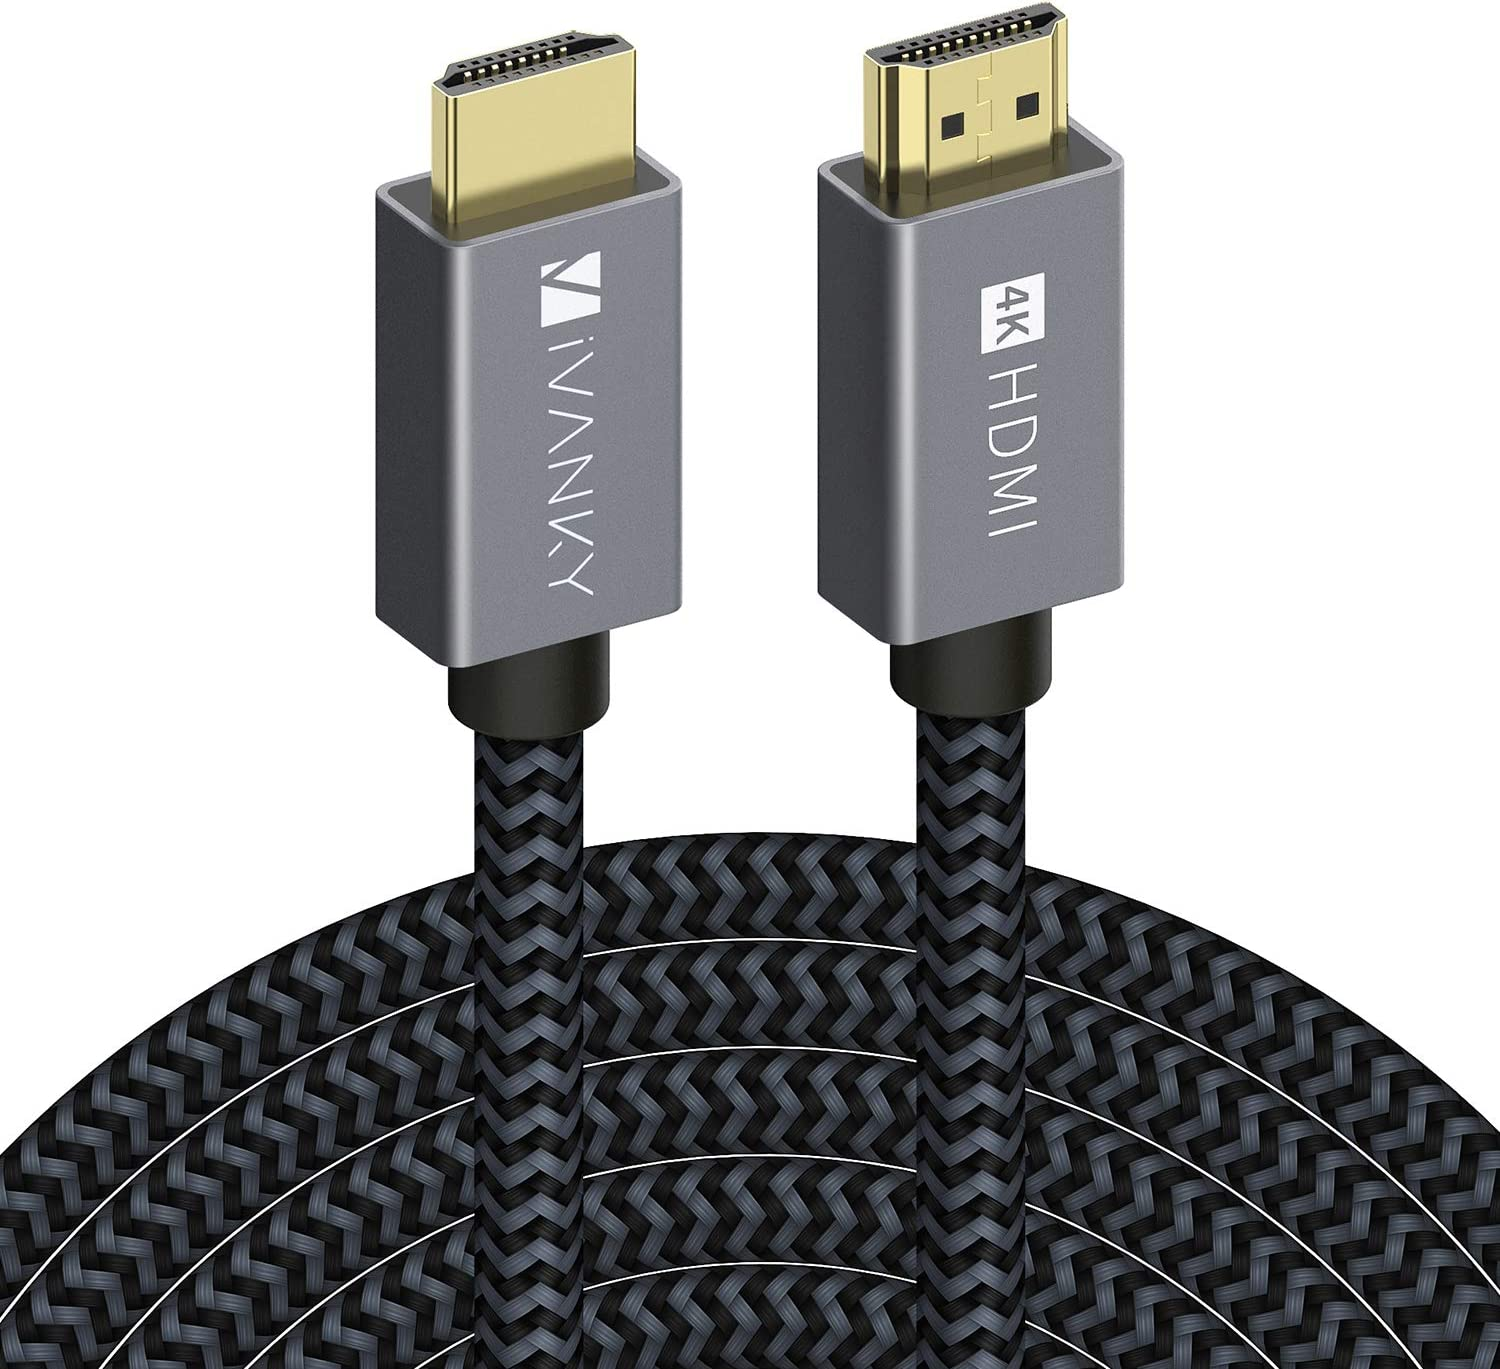 4K HDMI Cable 25 ft, iVANKY High Speed 18Gbps HDMI 2.0 Cable, 4K HDR, HDCP 2.2, 3D, 2160P, 1080P, Ethernet - Braided HDMI Cord, Audio Return (ARC) Compatible UHD TV, Blu-ray, PS4/3, Monitor, Projector